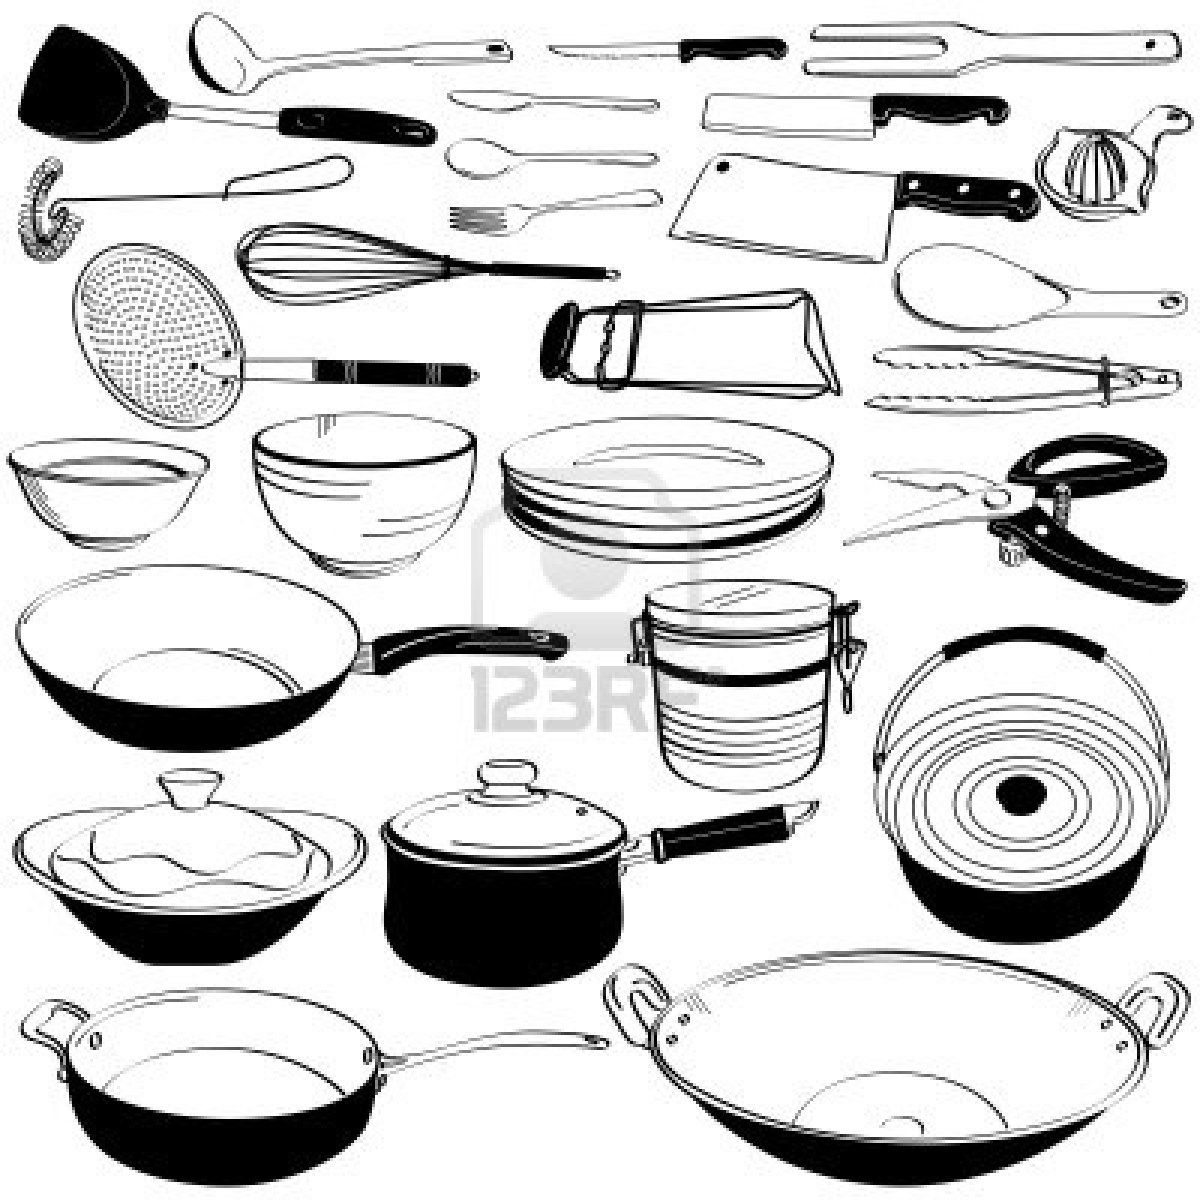 1200x1200 Baking Tools Clipartkitchen Tool Utensil Equipment Doodle Drawing